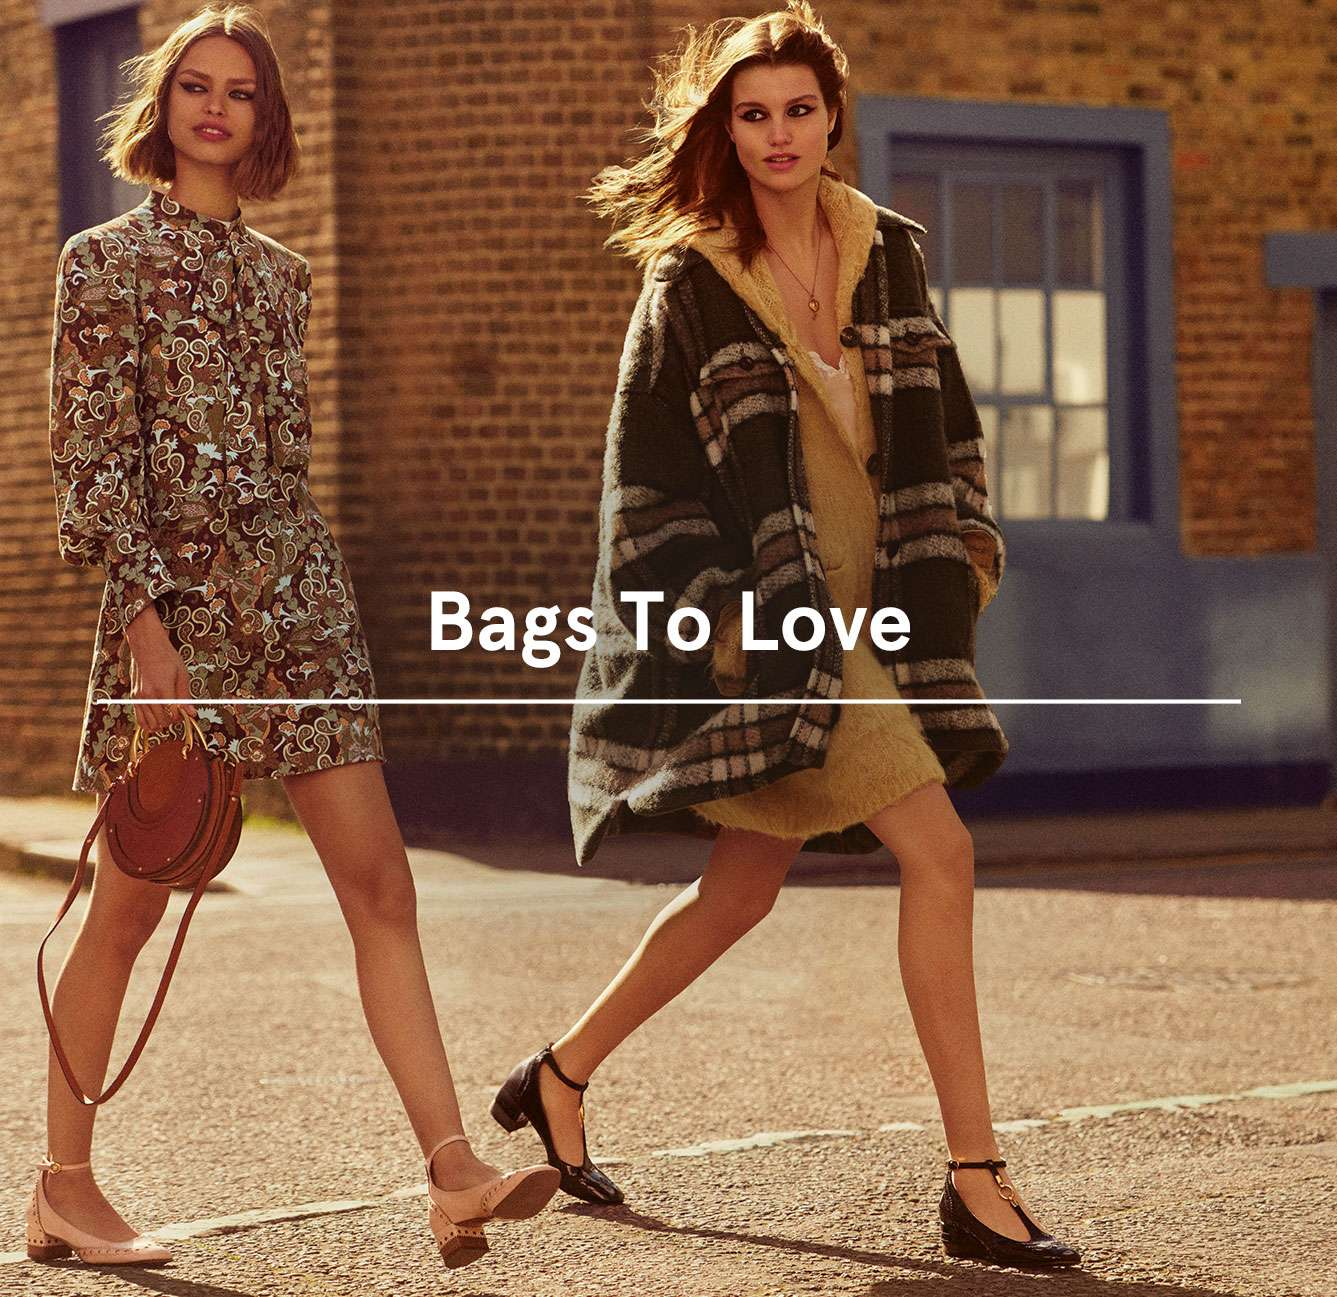 Bags To Love